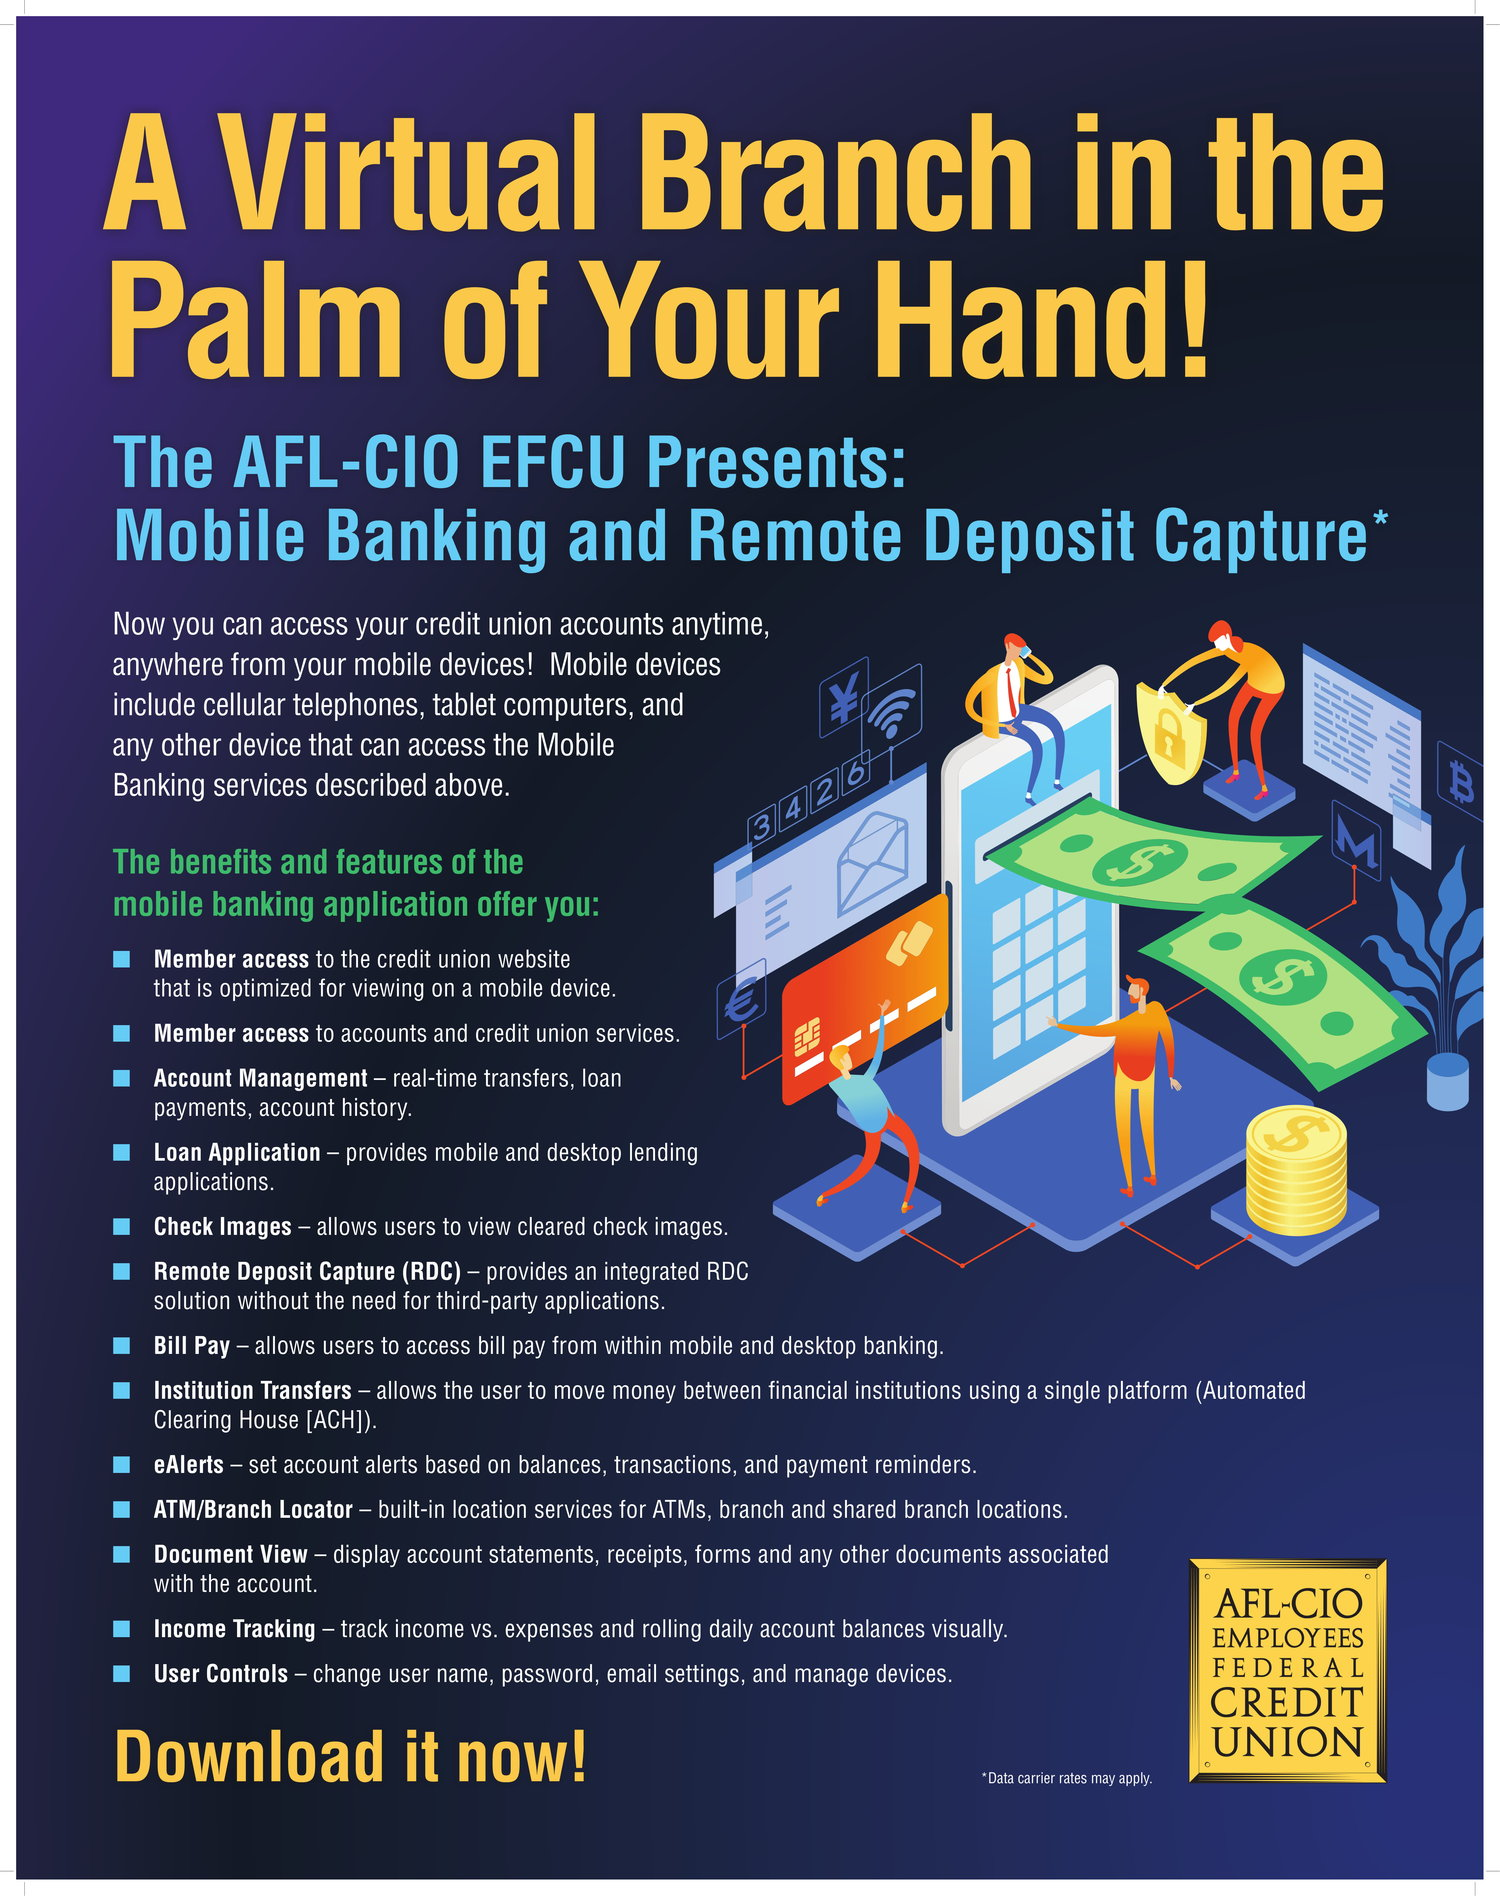 The AFL-CIO EFCU Presents: Mobile Banking and Remote Deposit Capture